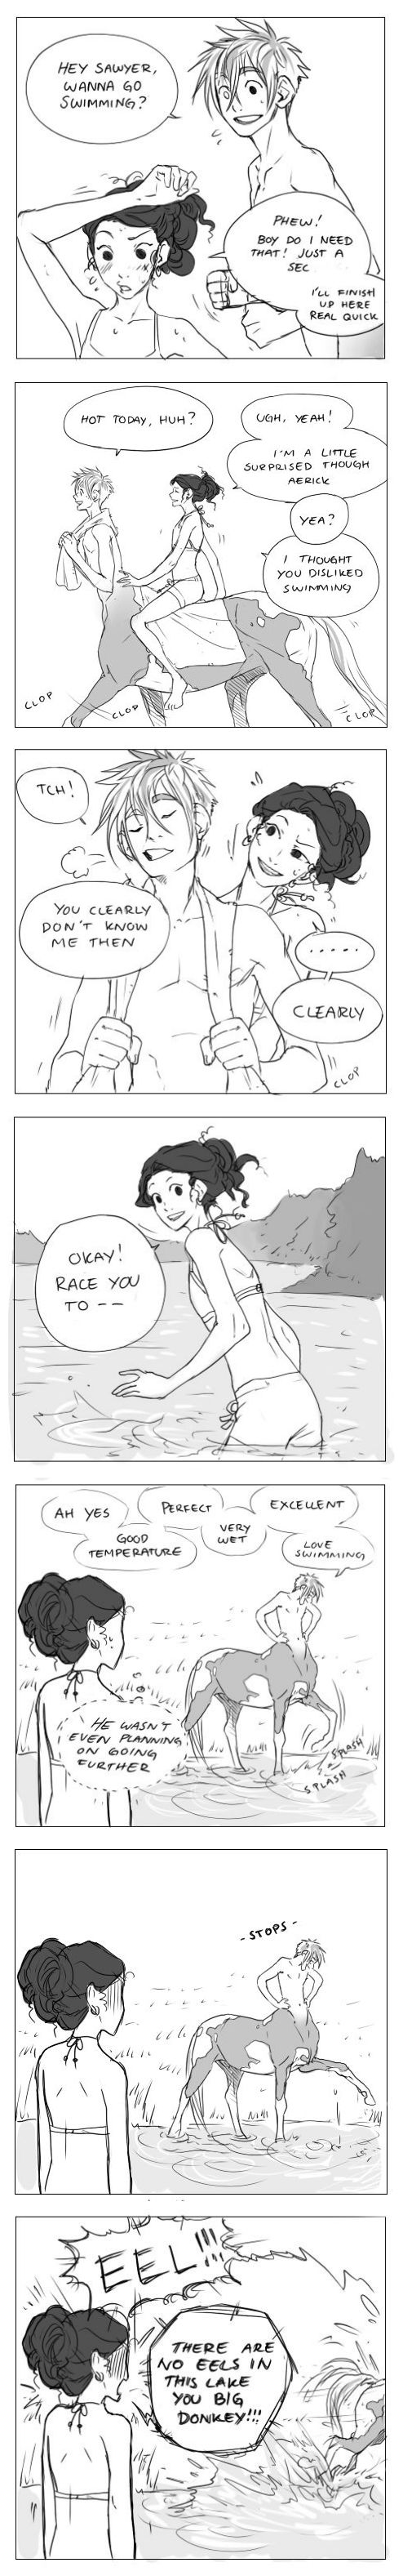 "For inspiration. hubedihubbe (""Swimming"" comic)"